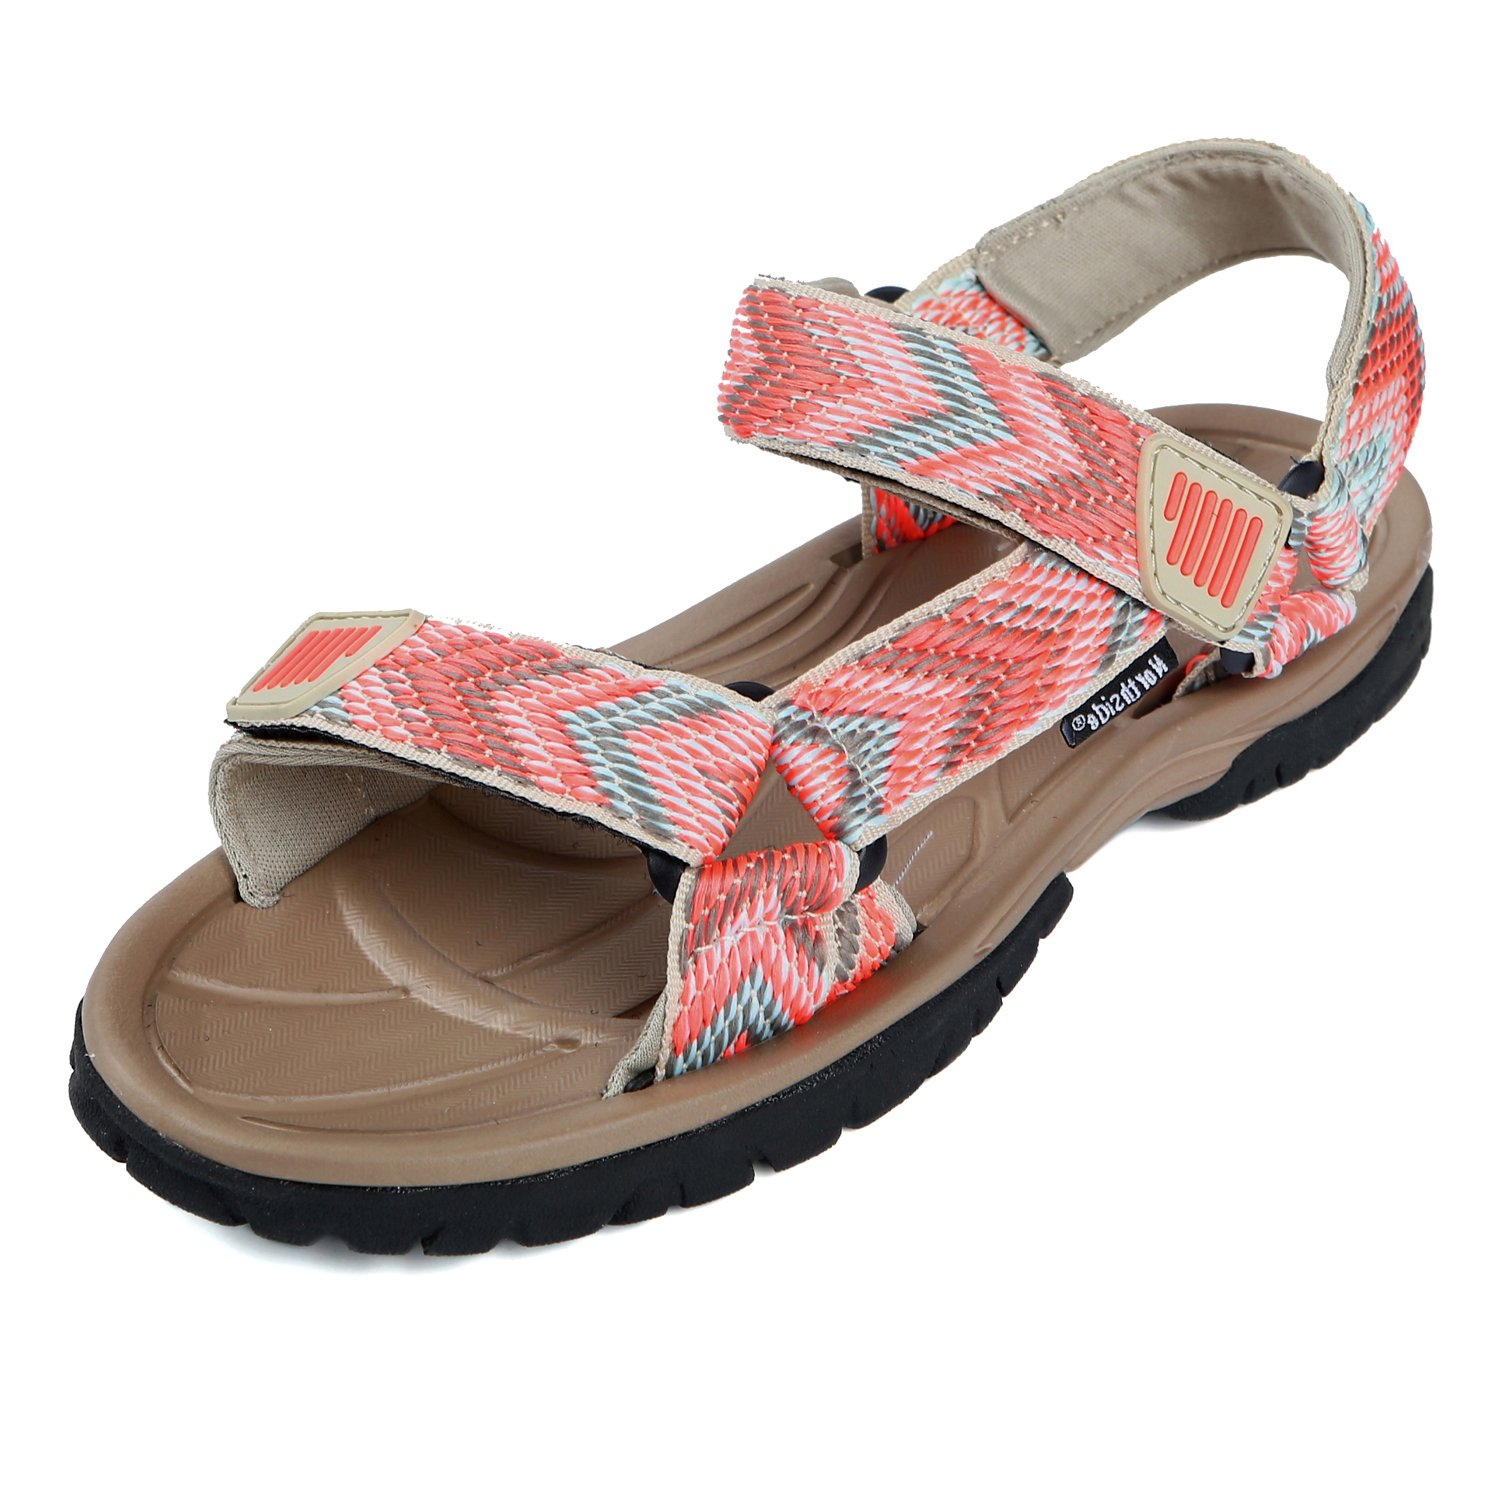 Northside Women's Seaview Sandal, Tan/Coral, 11 B(M) US